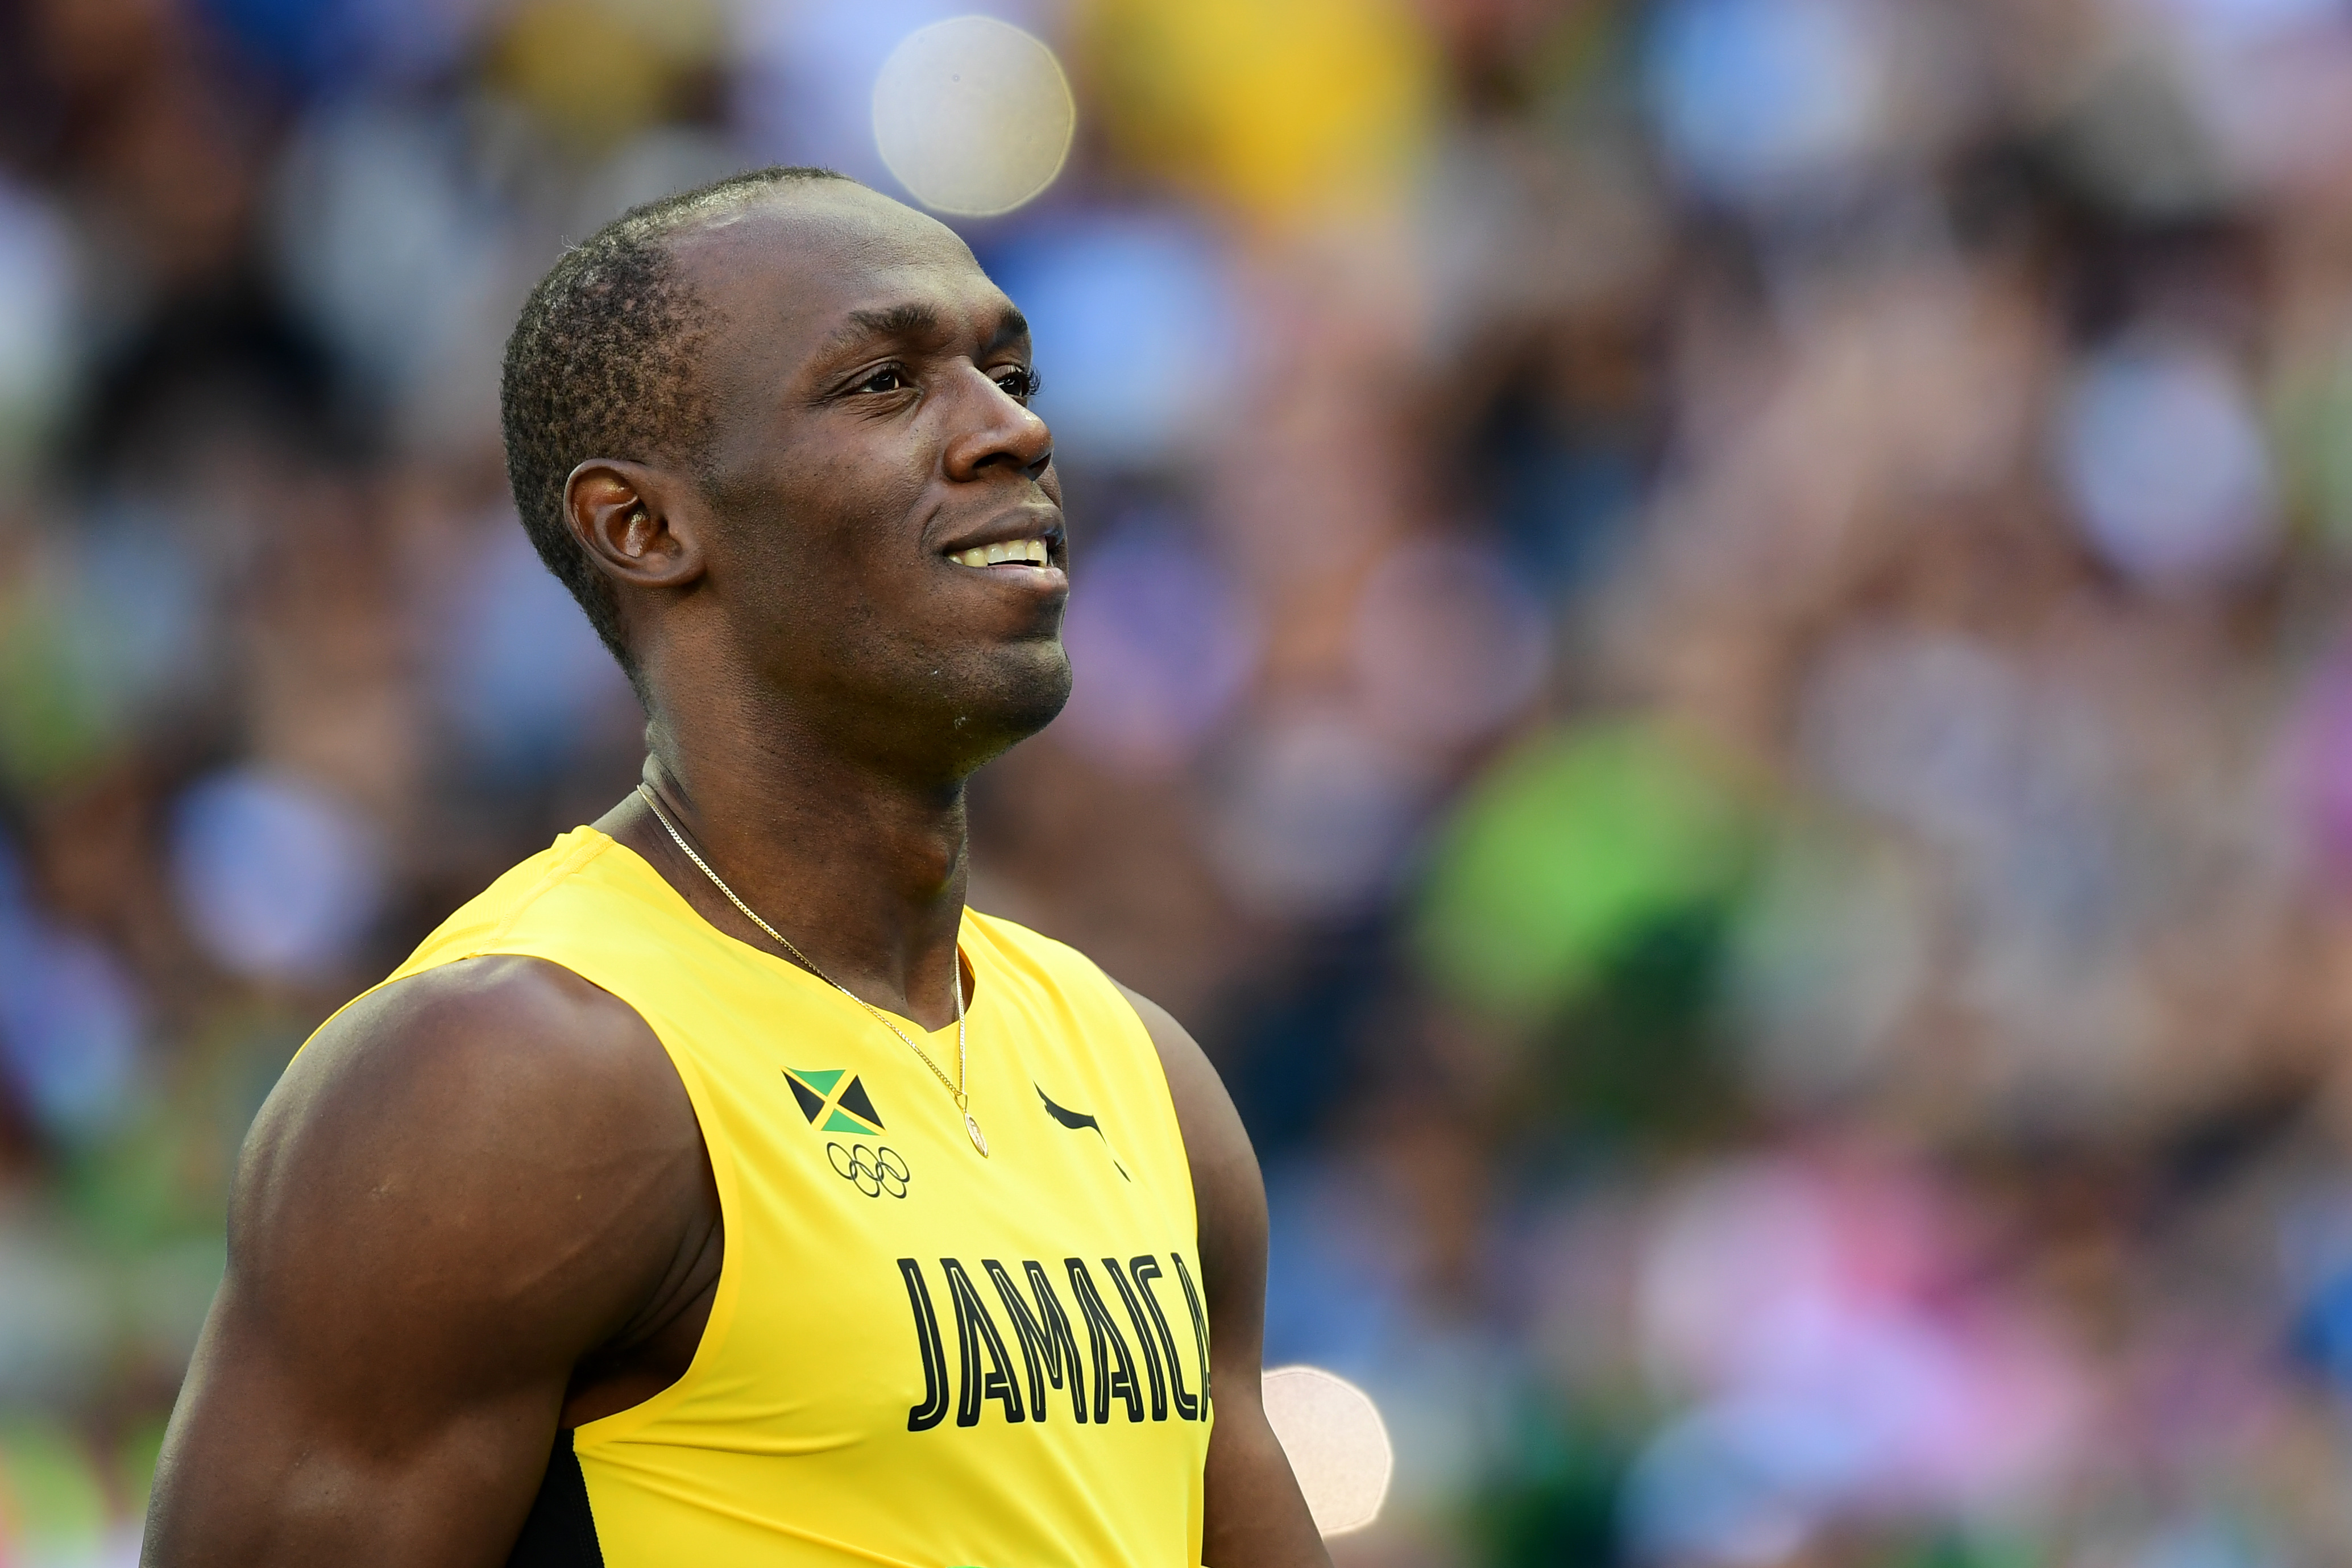 When are Usain Bolt and Justin Gatlin running the Rio 2016 Olympics 100m final?